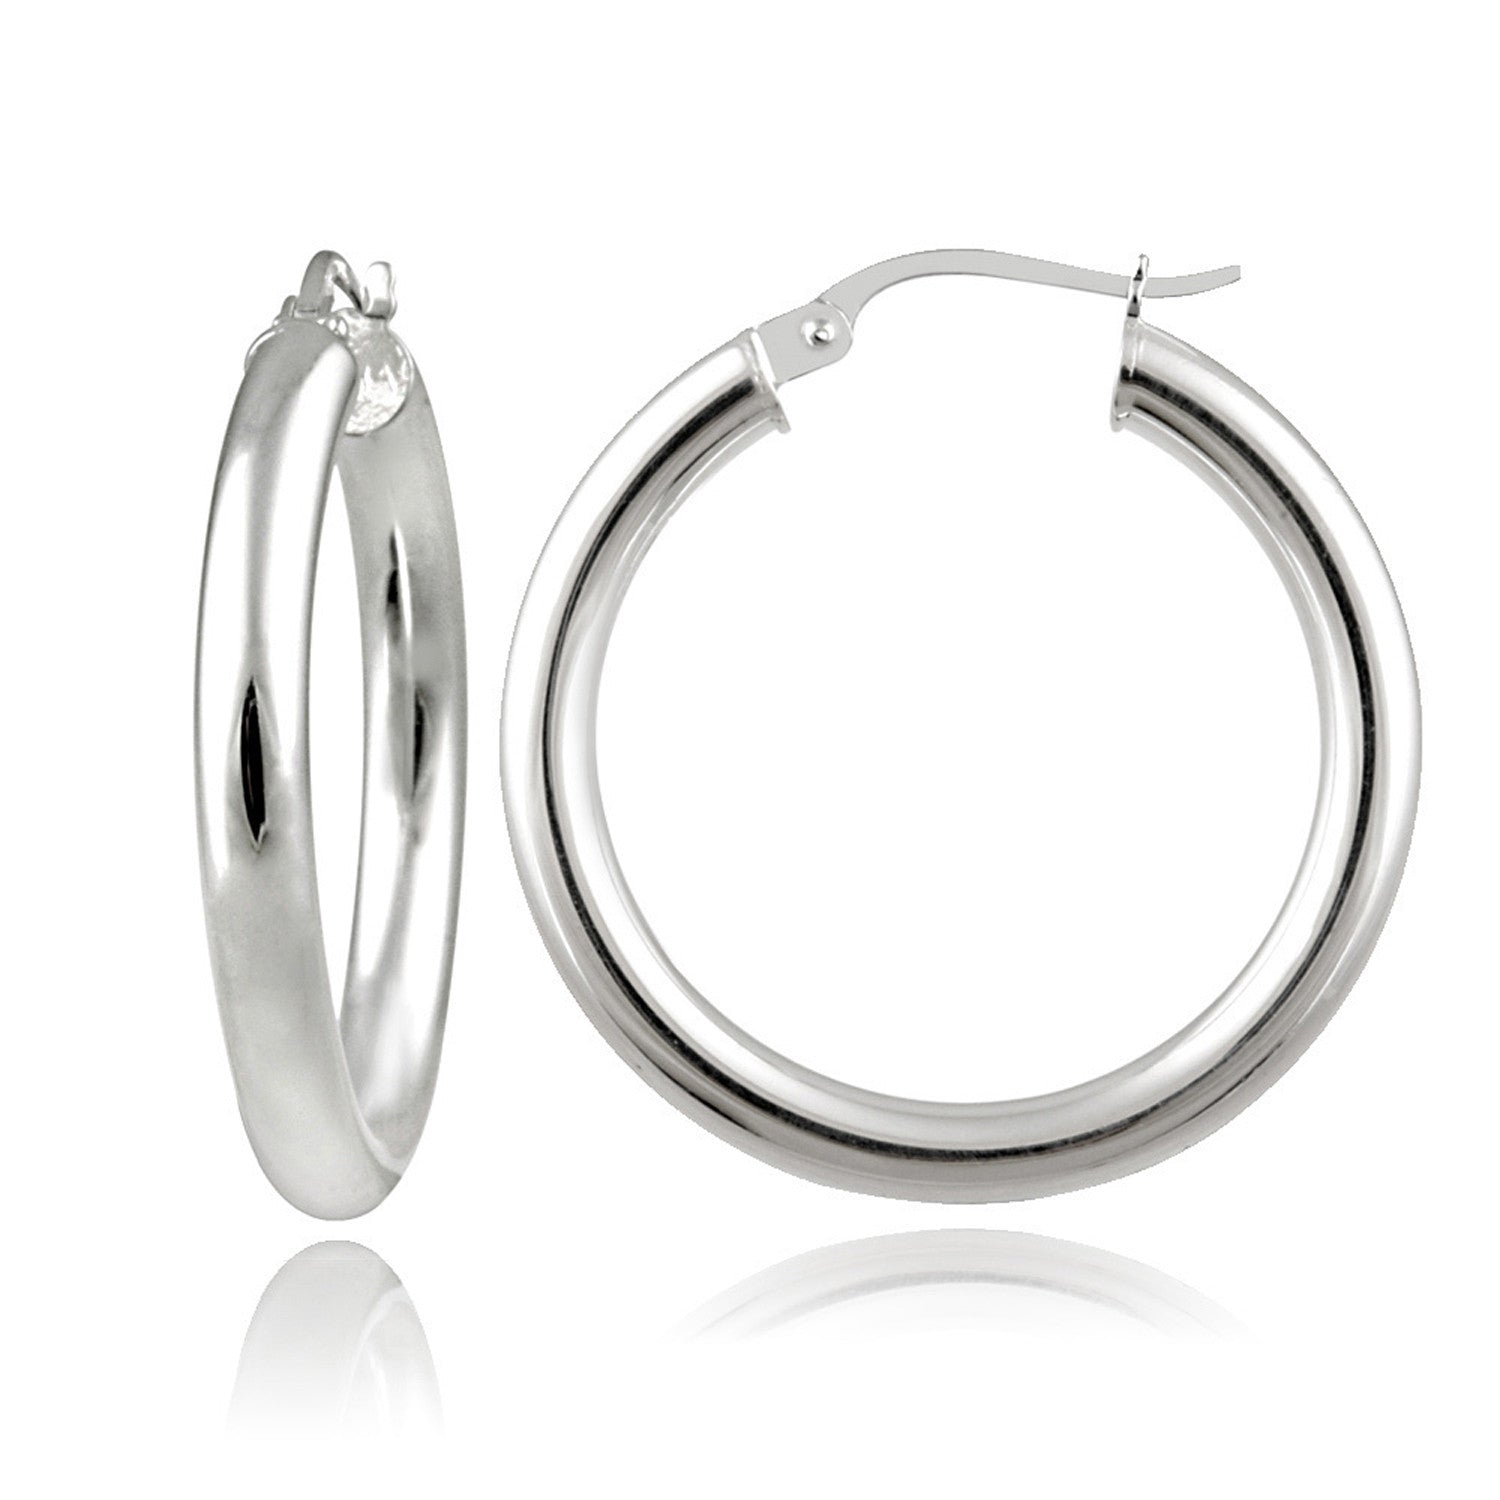 Polished Sterling Silver 25mm Round Saddleback Hoop Earrings - Silver